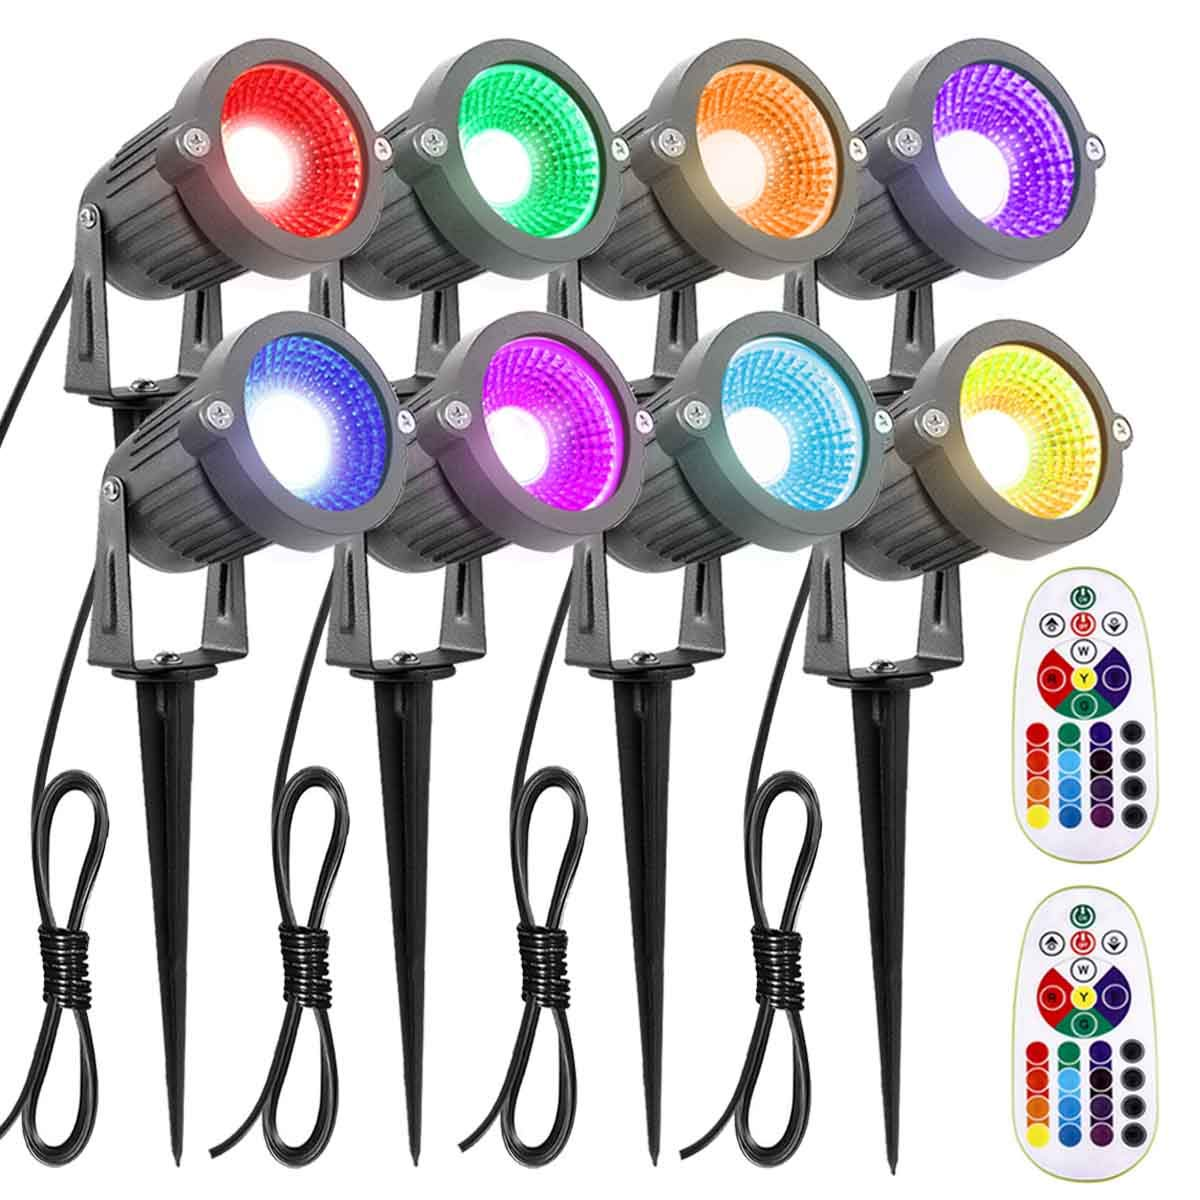 ZUCKEO Landscape Lighting 6W RGB Remote Control LED Landscape Lights 12V 24V Low Voltage Garden Pathway Lights, Waterproof 16 Color-Changing Decorative Lights for Indoors Outdoors(8 Pack) by ZUCKEO